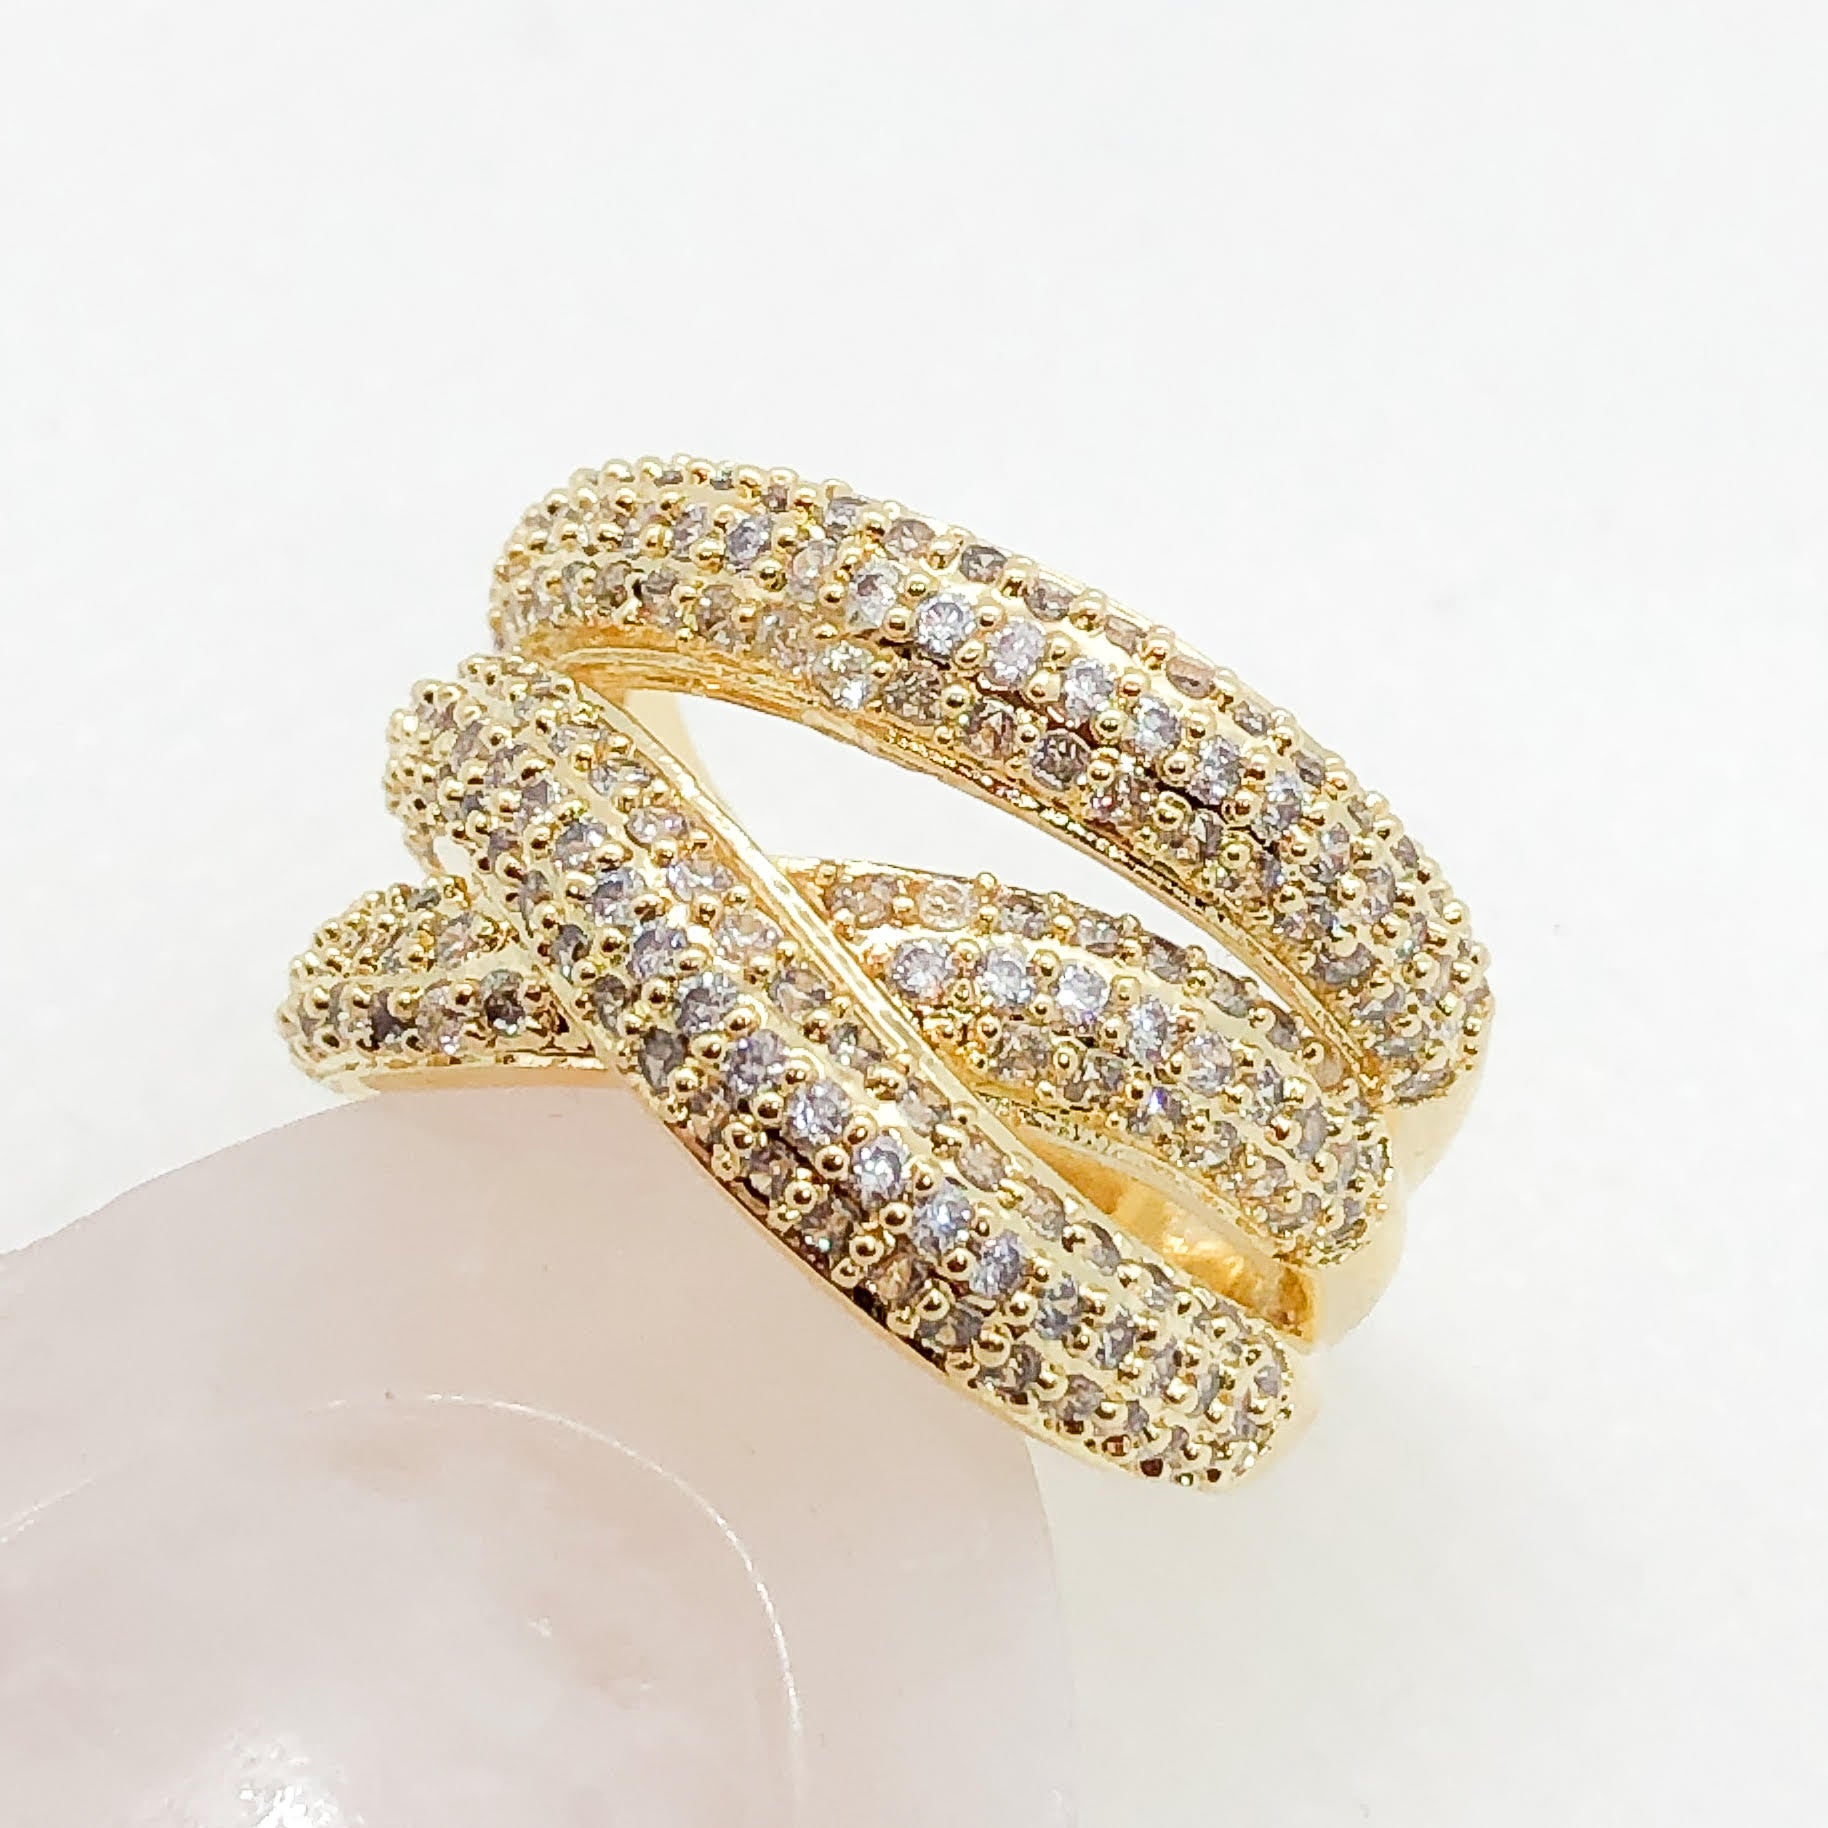 ID:R7550 Women Jewelry 18K Yellow Gold GF Sparkling Clear Stones Eternity Expensive-Looking Engagement Wedding Band Ring